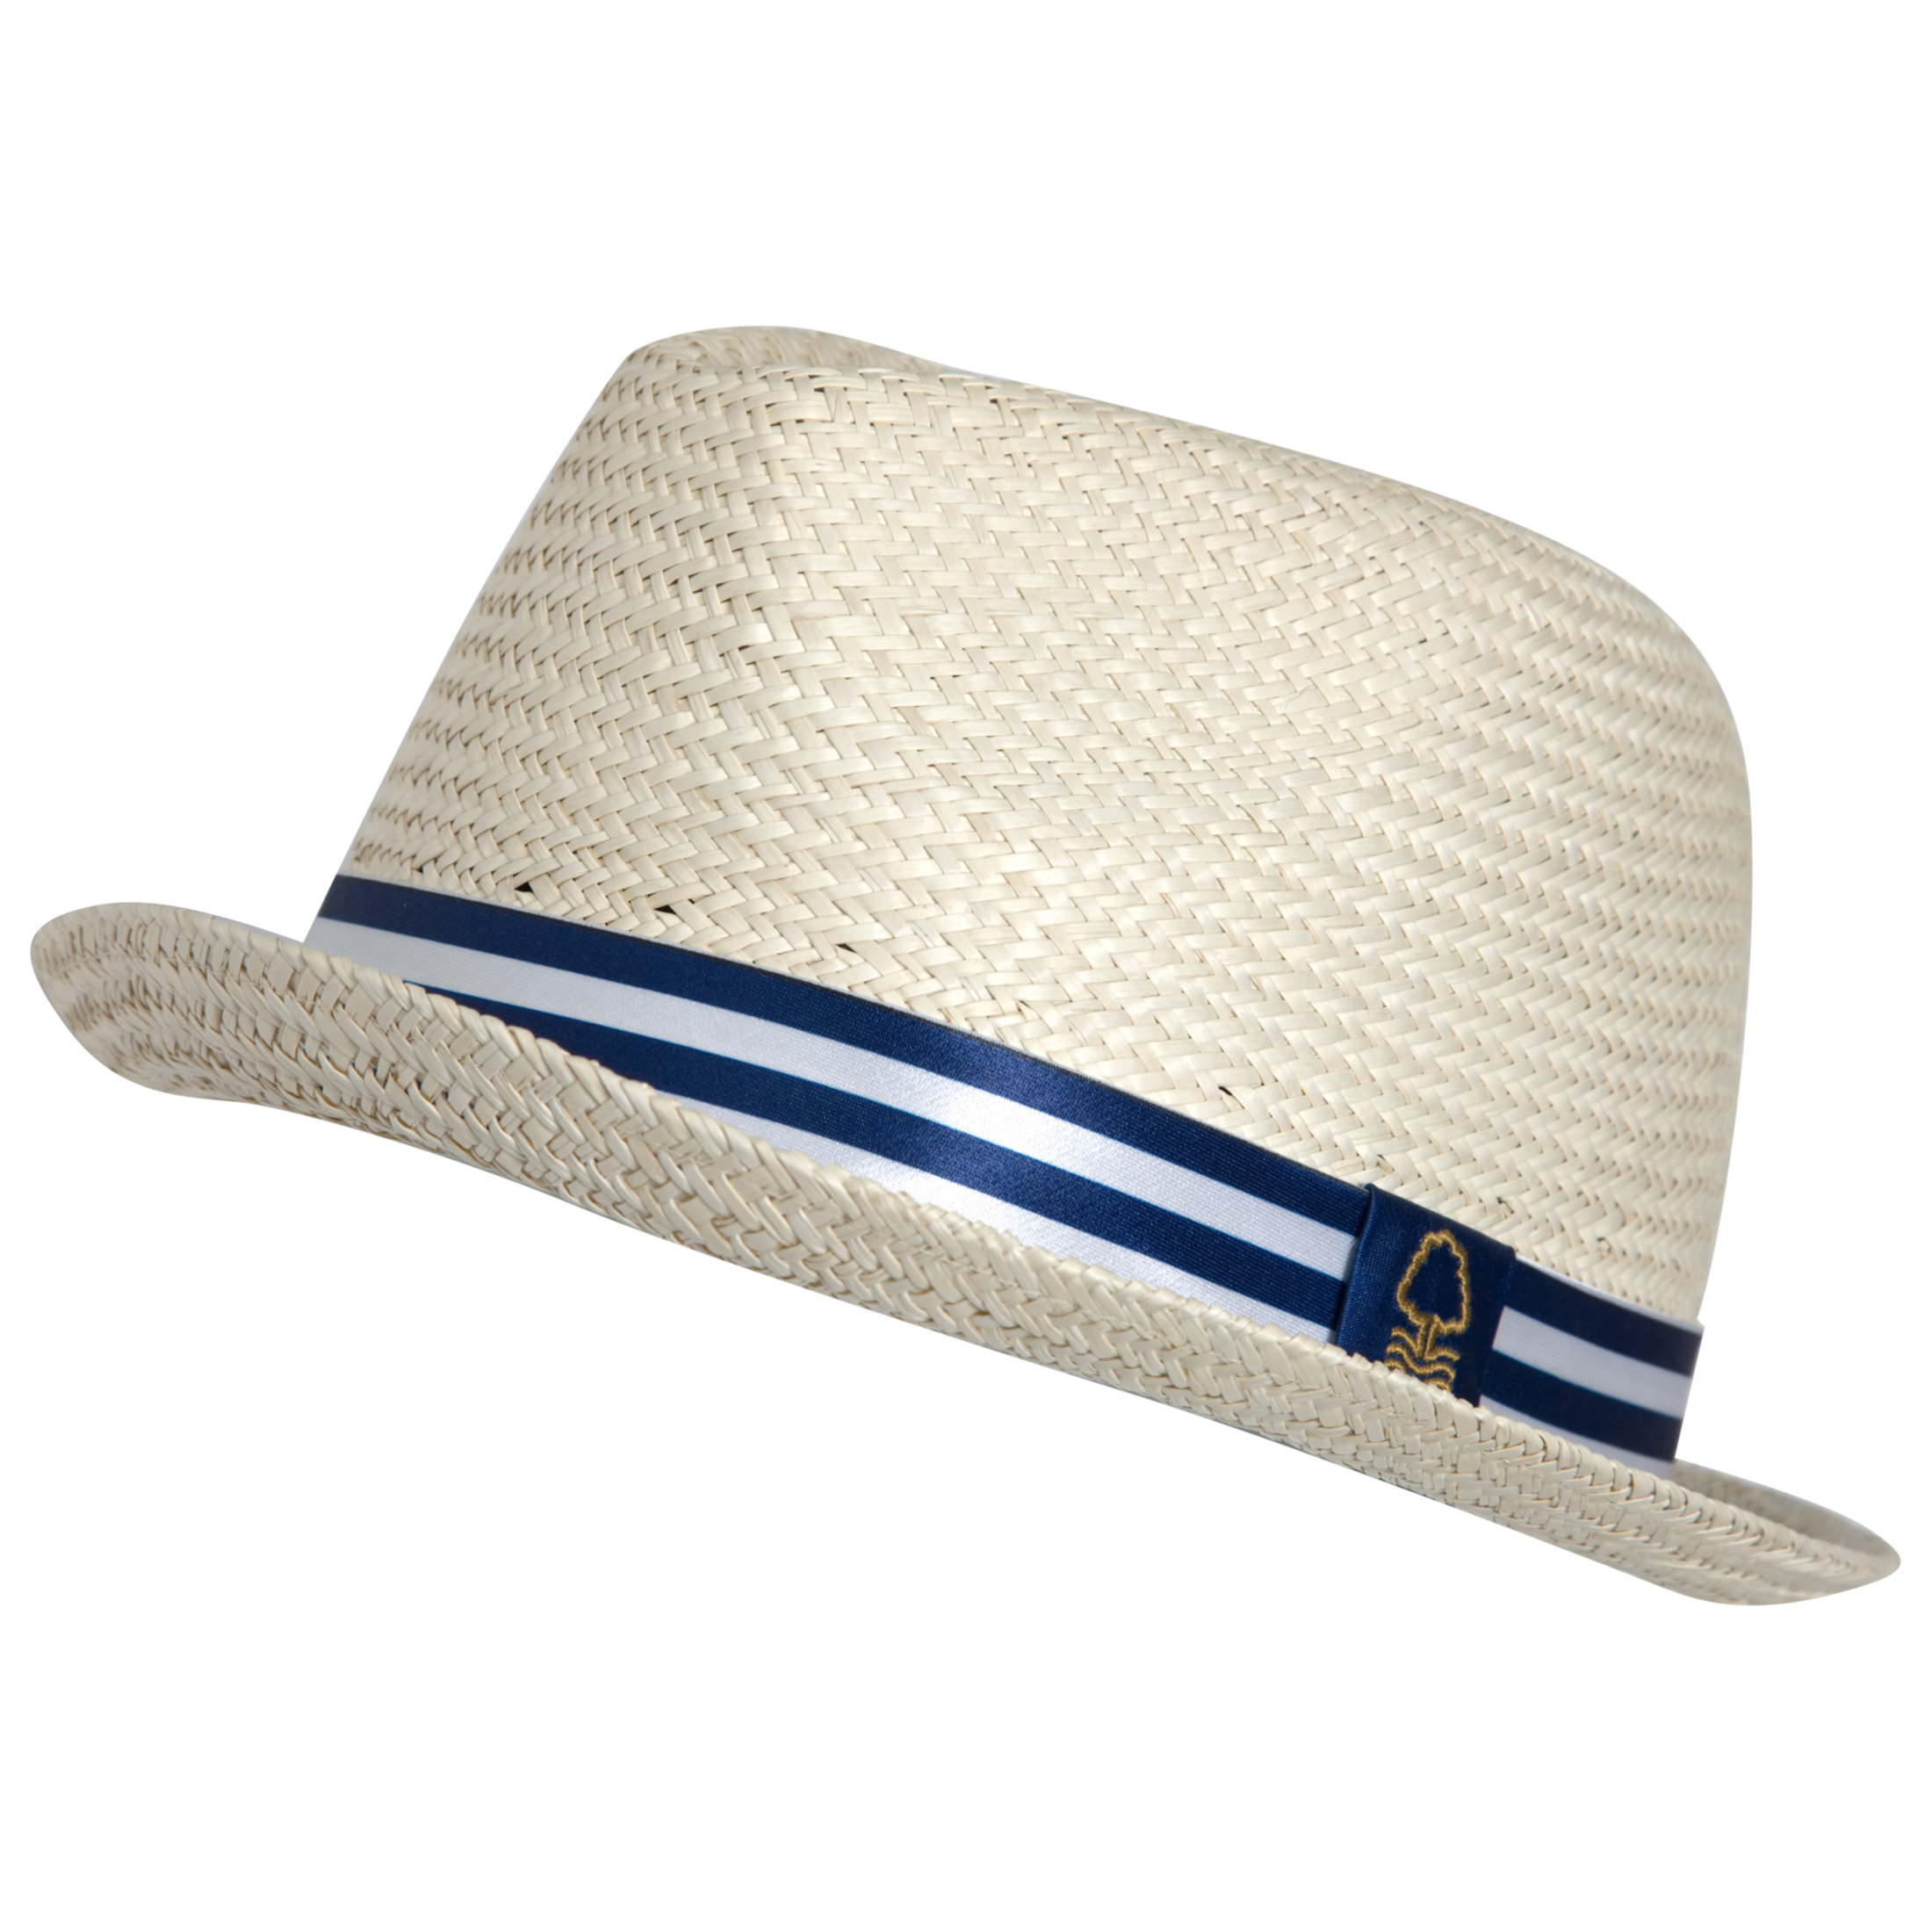 Nottingham Forest Nautical Trilby